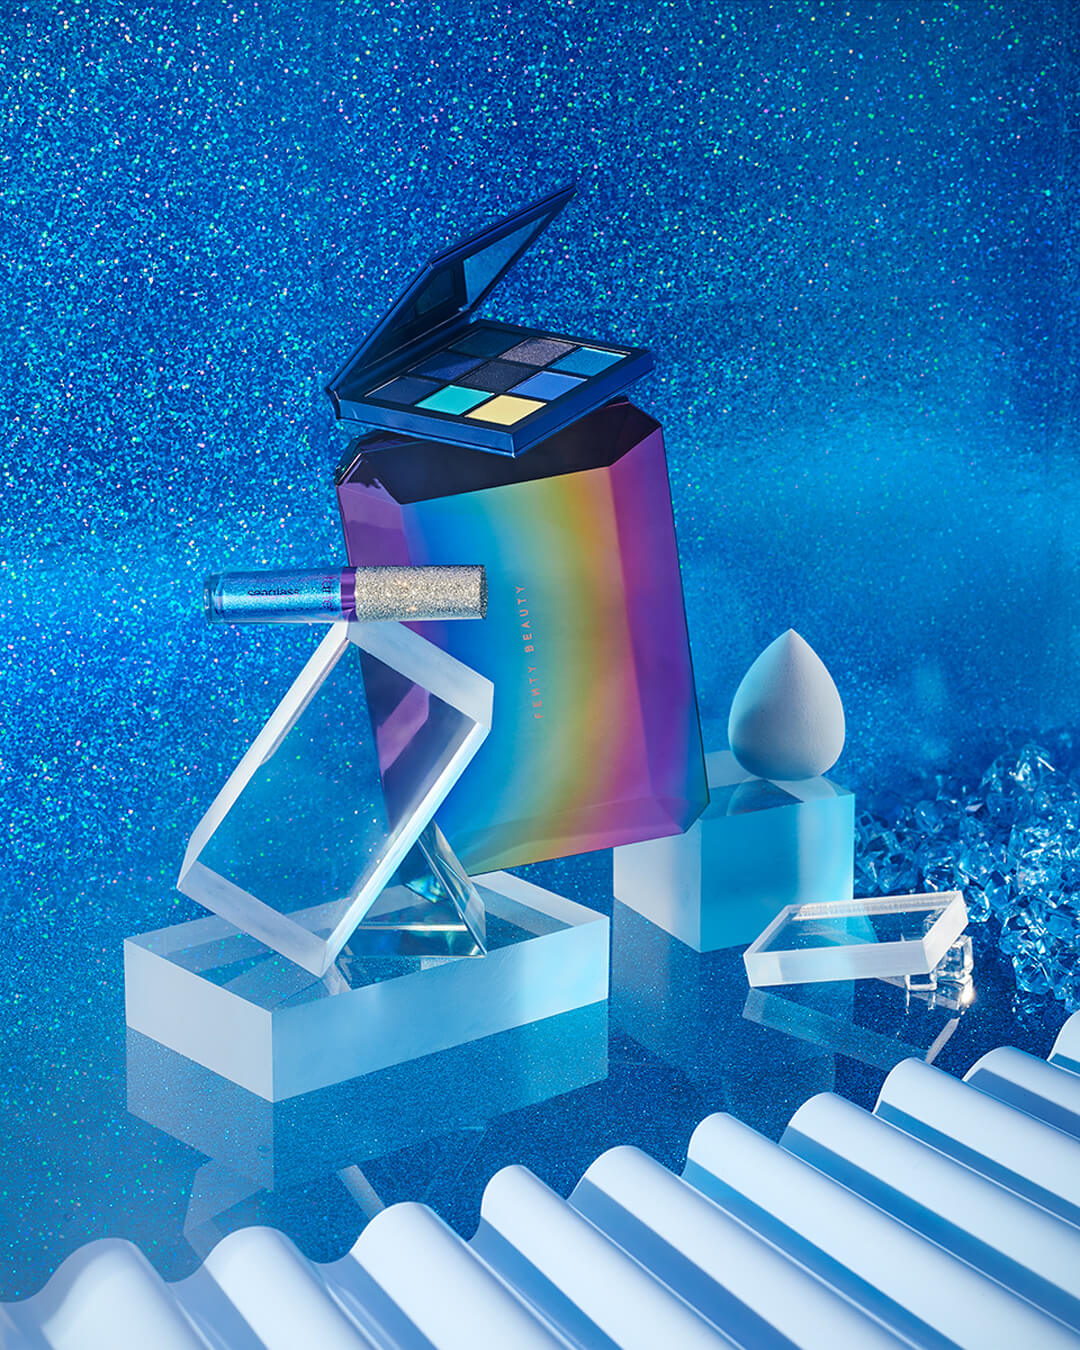 credits: photo - jenna gang, styling - astrid chastka  description: conceptual still life image of fenty beauty and a beauty blender in a cold blue outer space world.